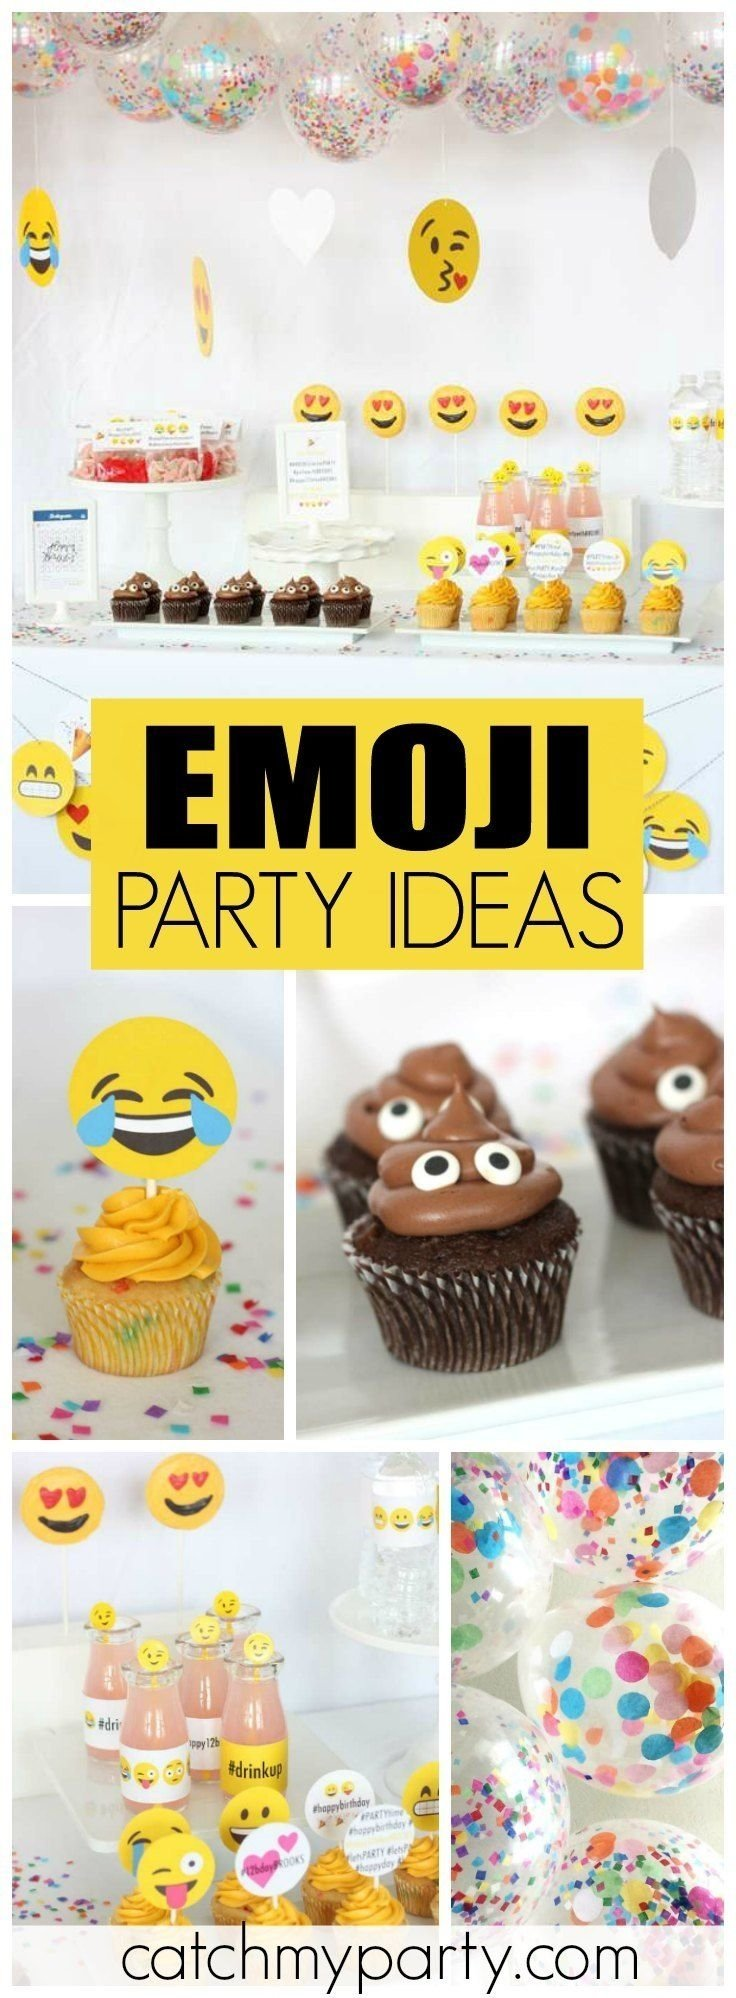 10 Lovely Birthday Party Ideas For Girls Age 5 30th Her